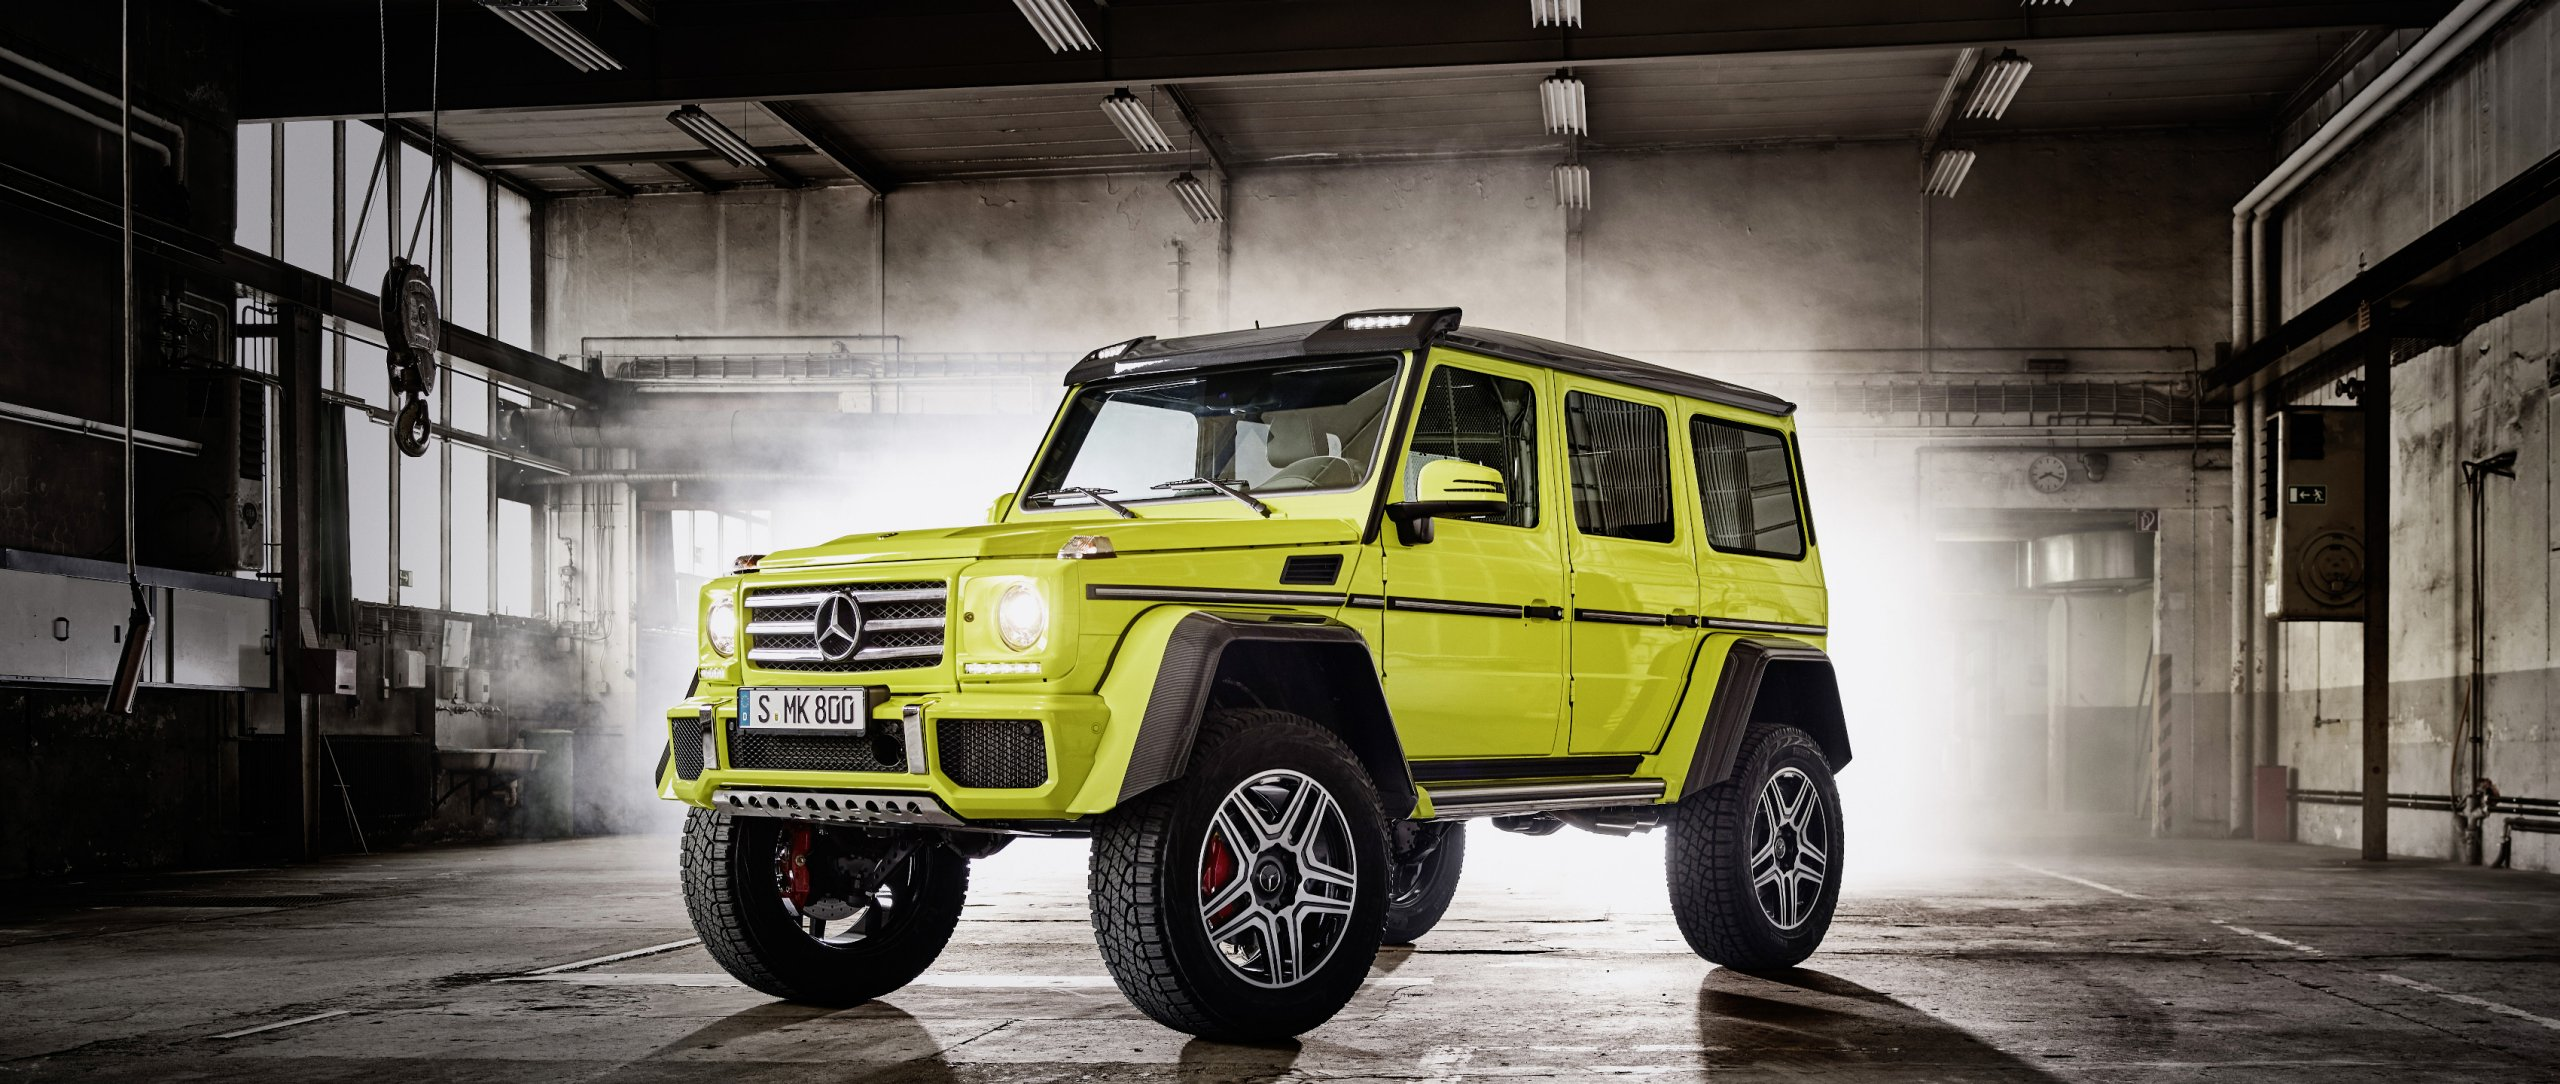 The Mercedes Benz G Class G 500 4x4 G Class Squared